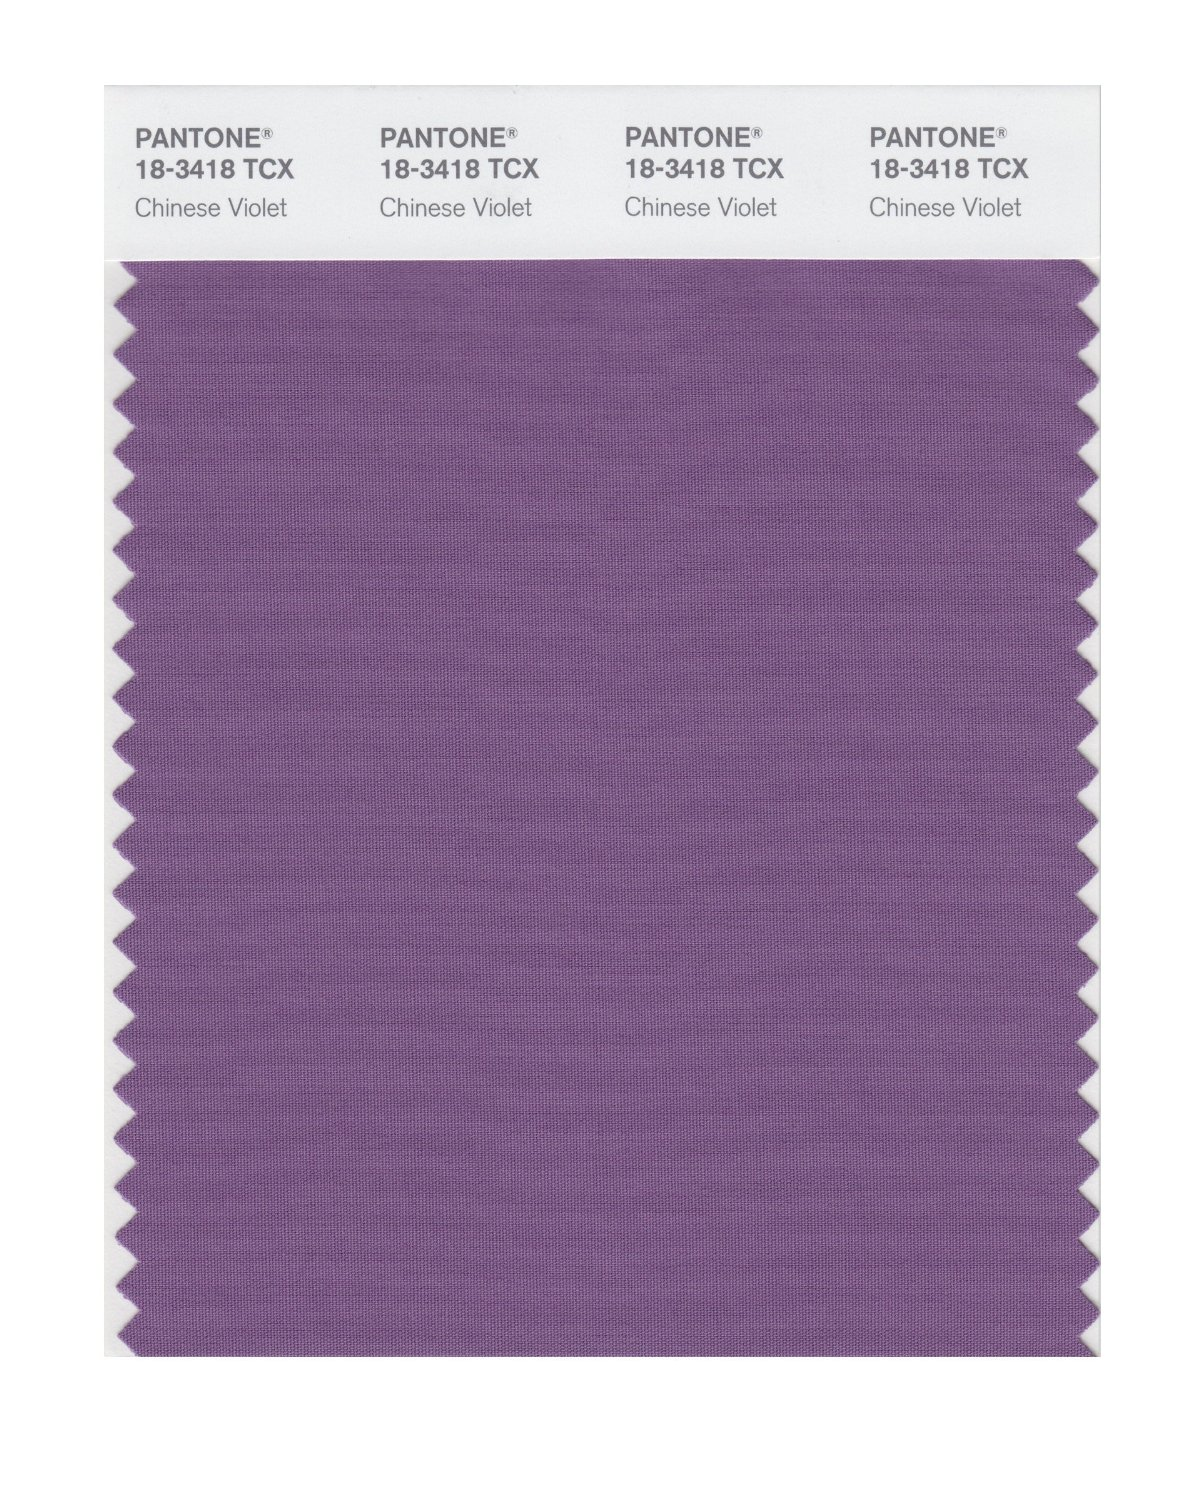 Pantone Smart Swatch 18-3418 Chinese Violet